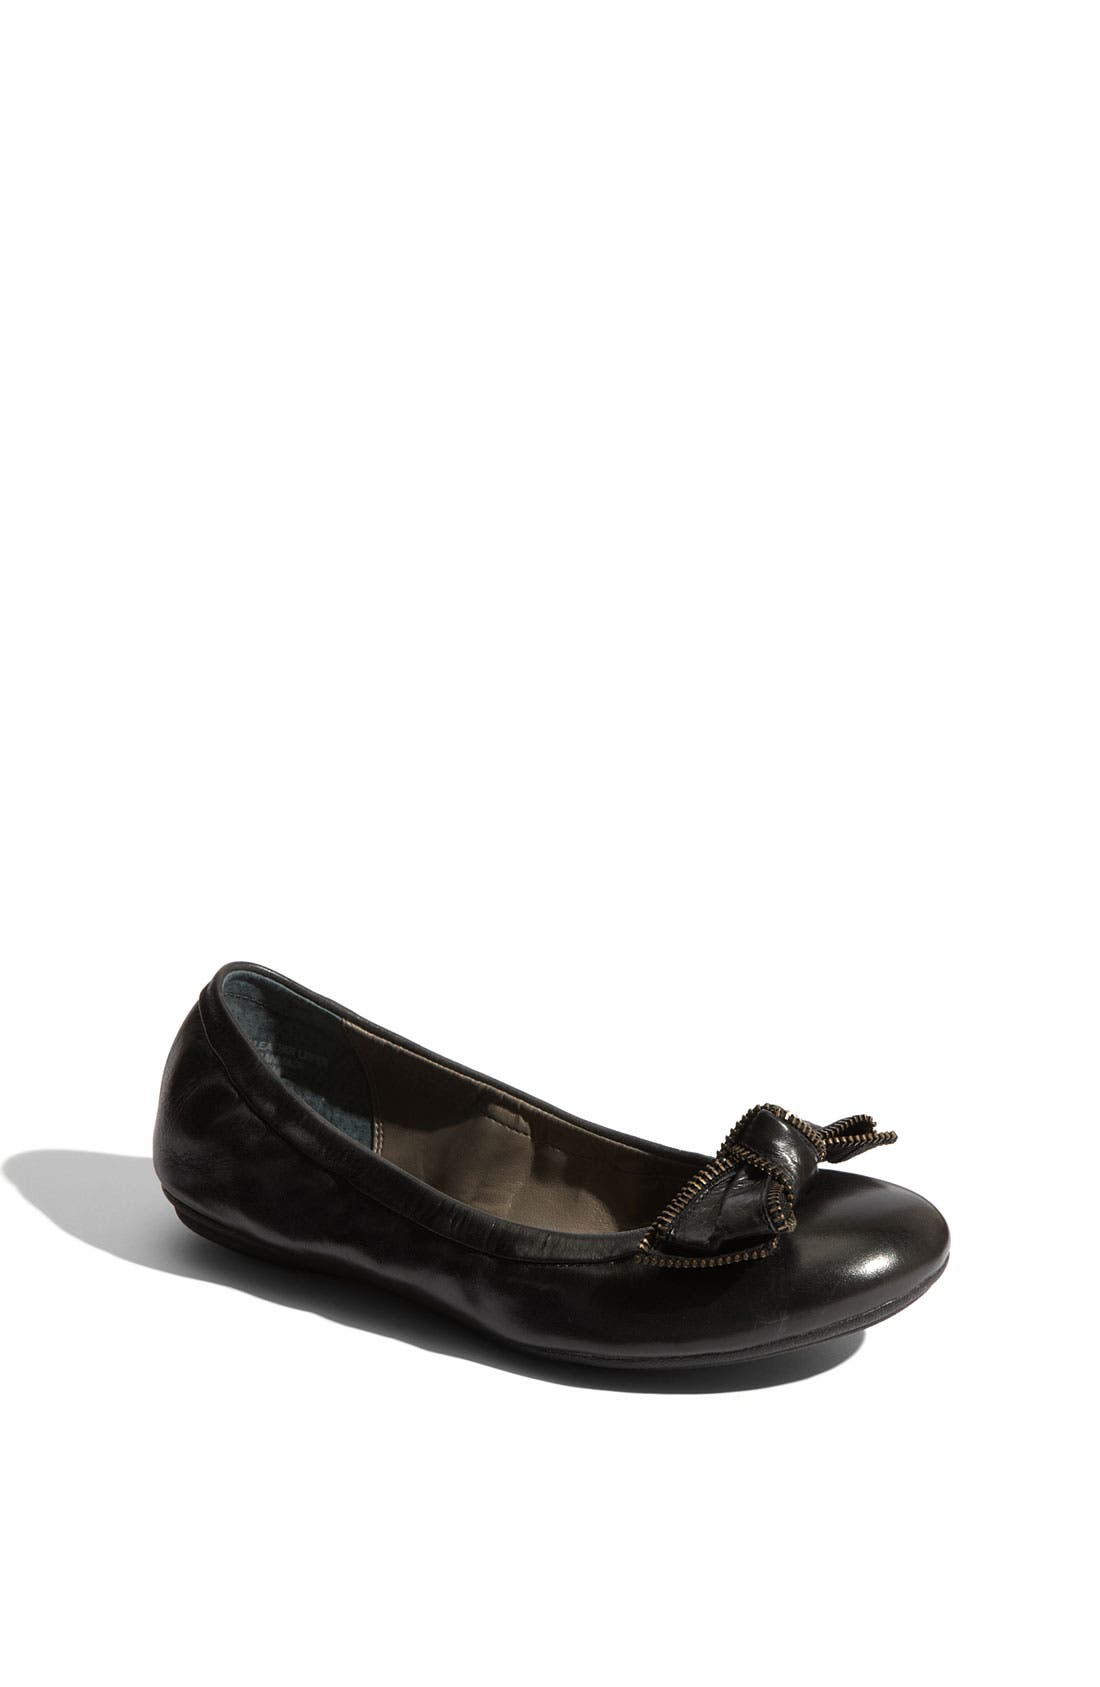 Main Image - Nordstrom 'Tessa' Flat (Walker, Toddler, Little Kid & Big Kid) (Special Purchase)